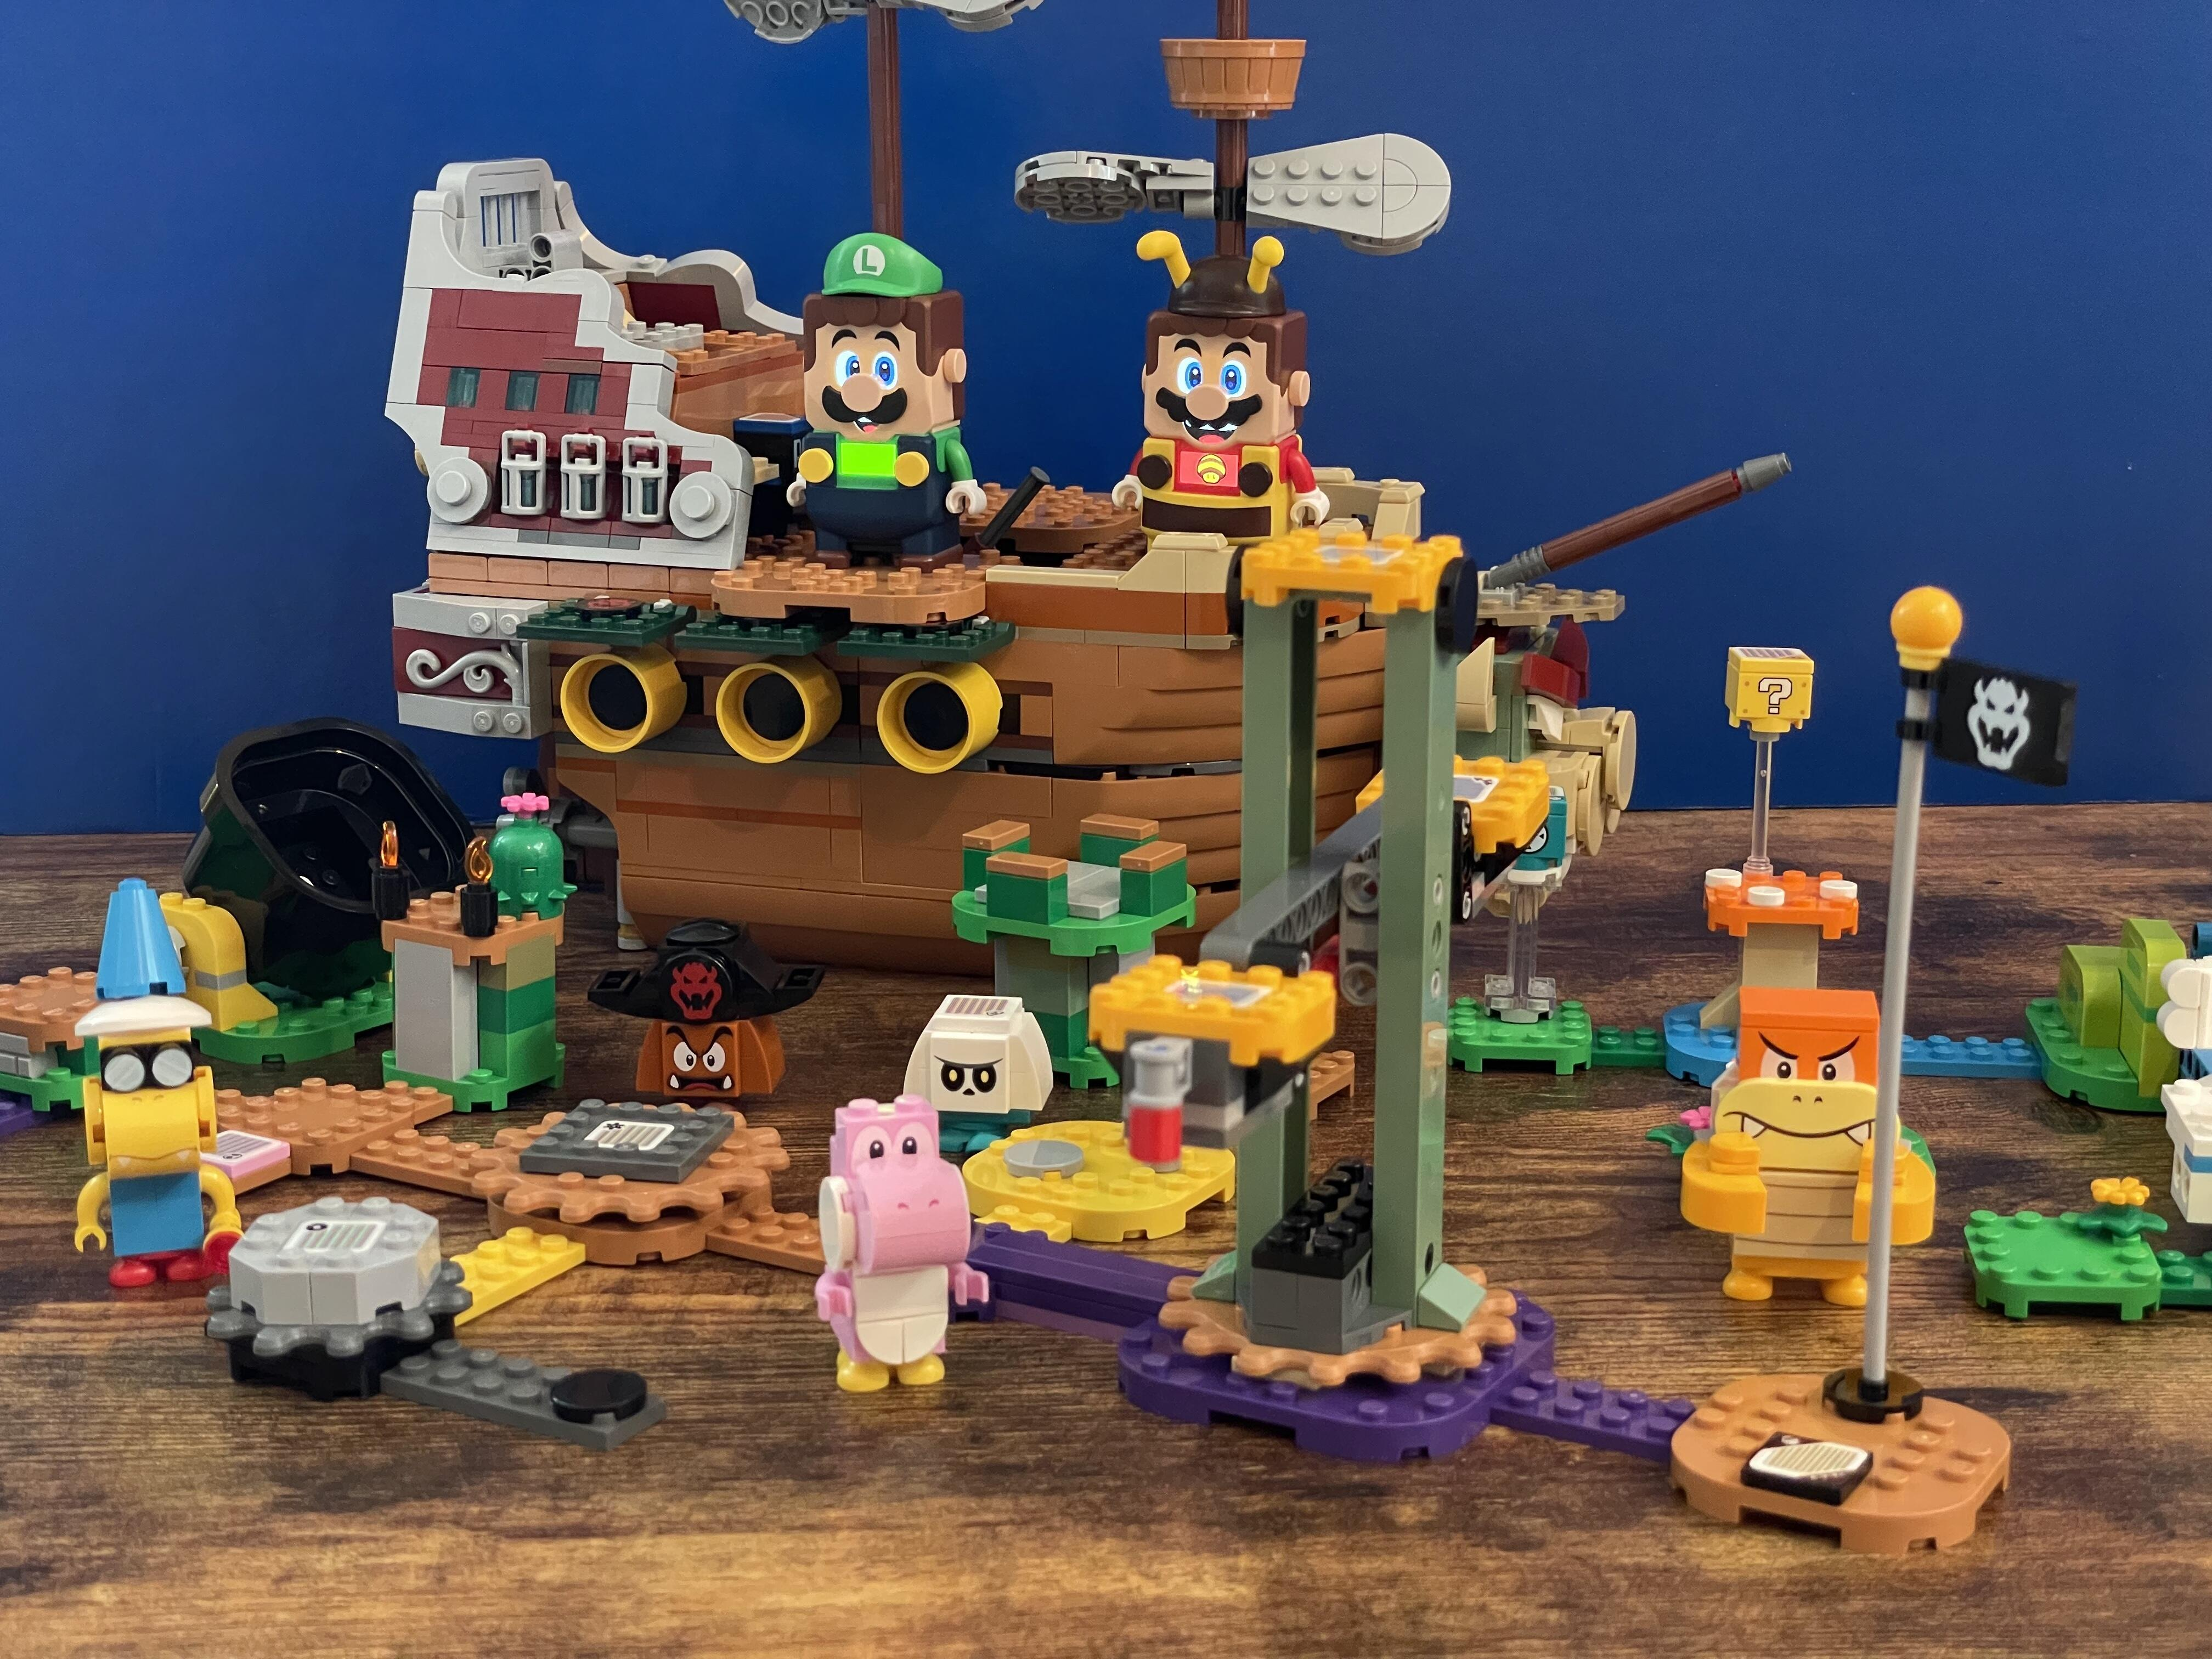 <p>This is several kits' worth of Super Mario bricks, but the Lego approach to Super Mario remains inspired.</p>